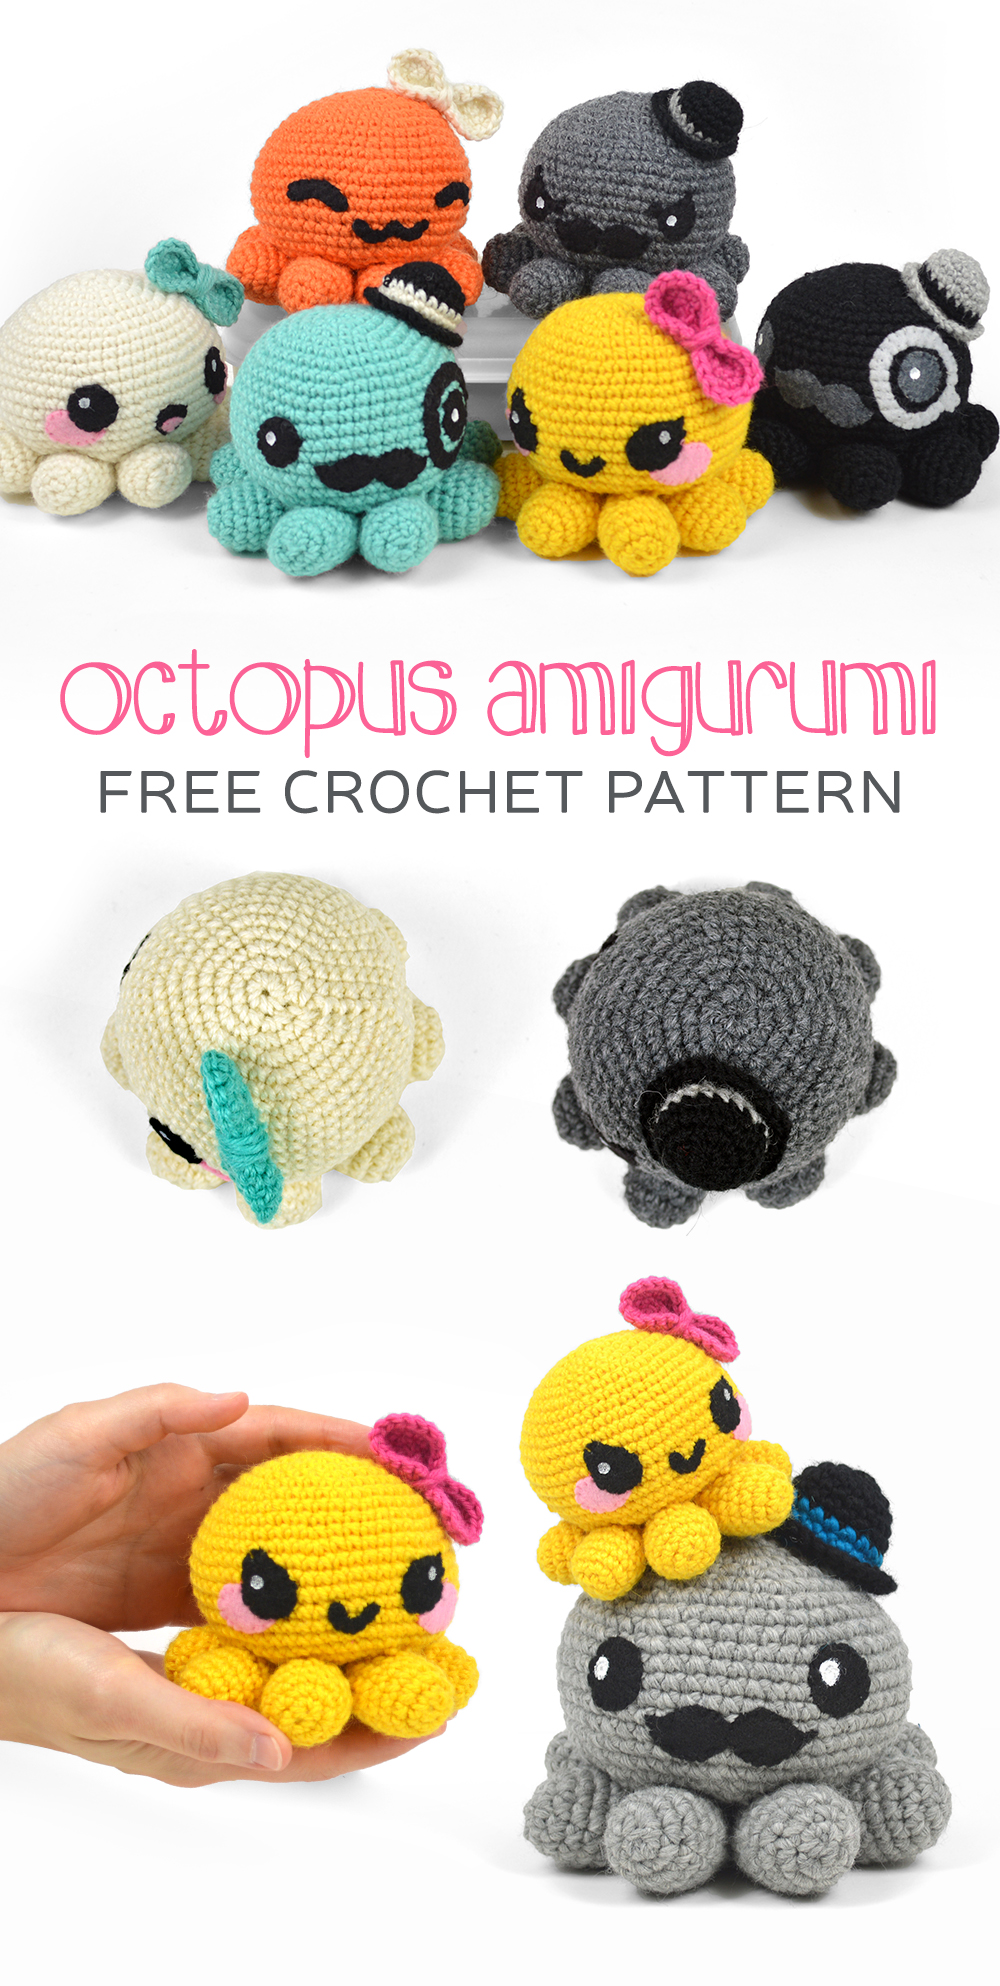 Free (Crochet) Pattern Friday! Octopus Amigurumi | Choly Knight